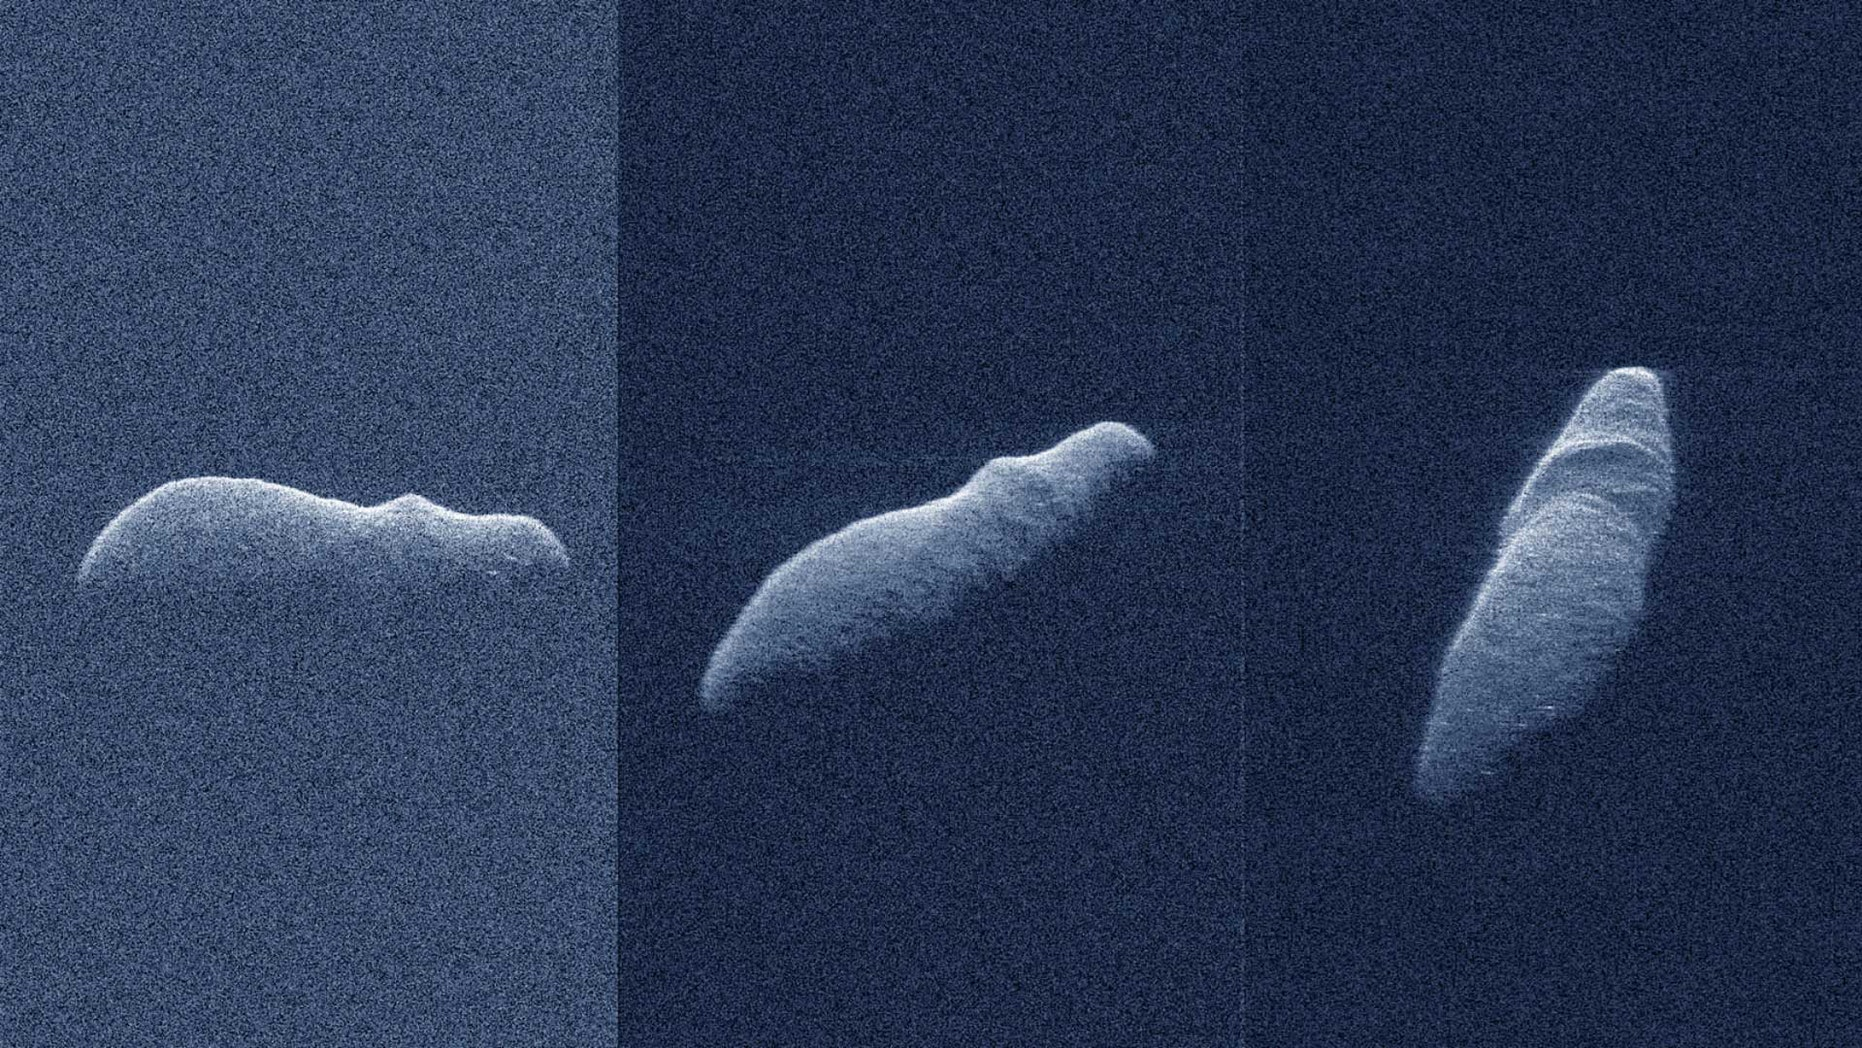 These three radar images of the near-Earth asteroid 2003 SD220 were recorded on December 15 and 17, 2018.